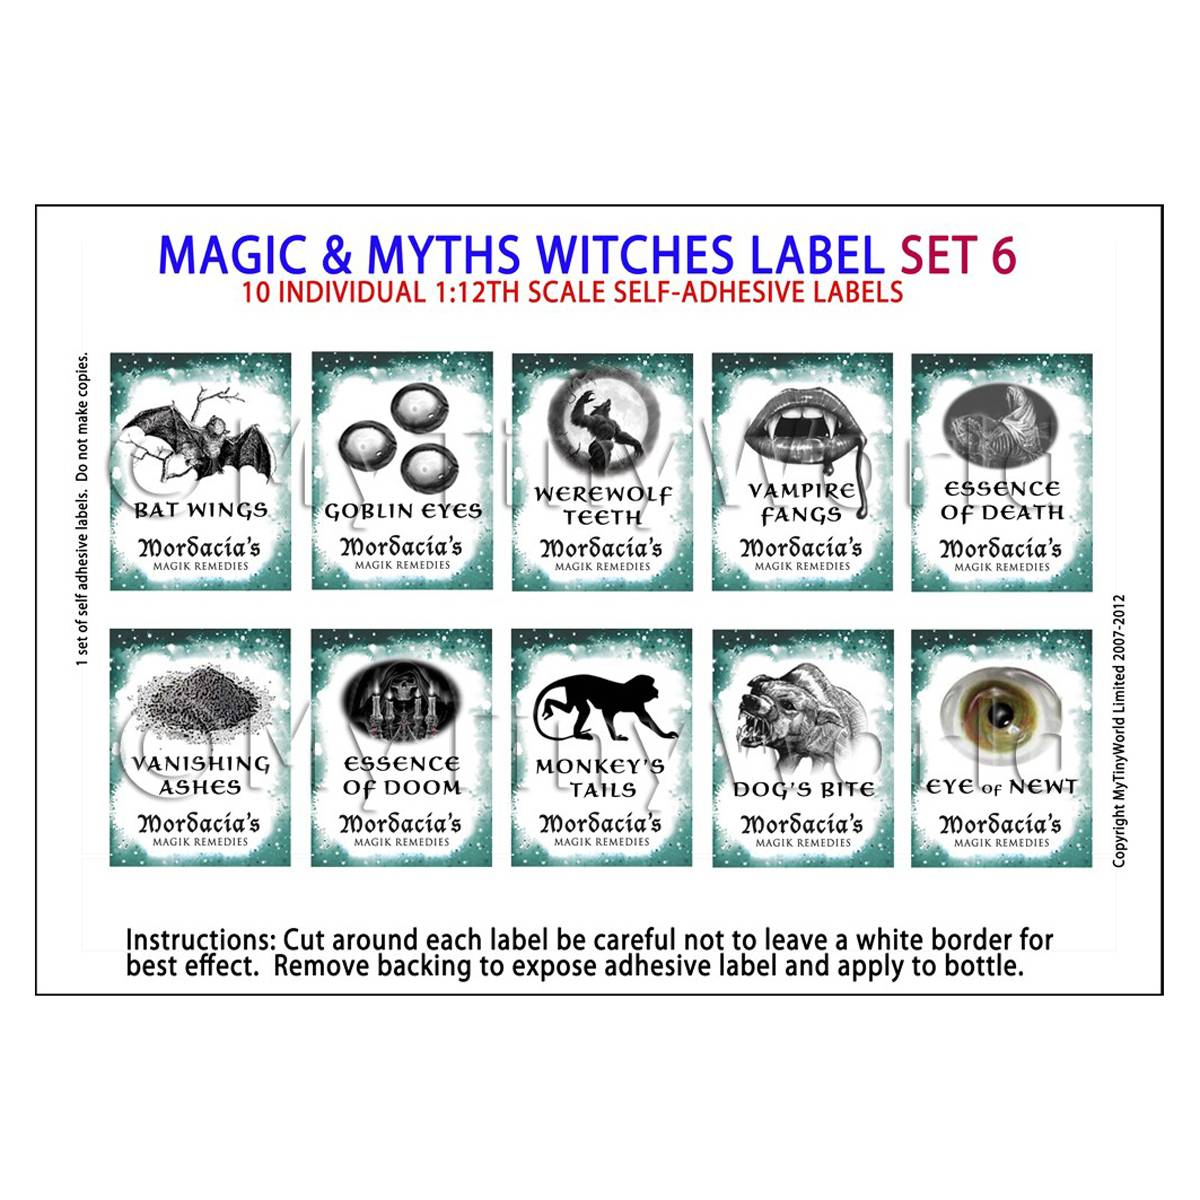 Dolls House Miniature Myth And Magic Label Set 6